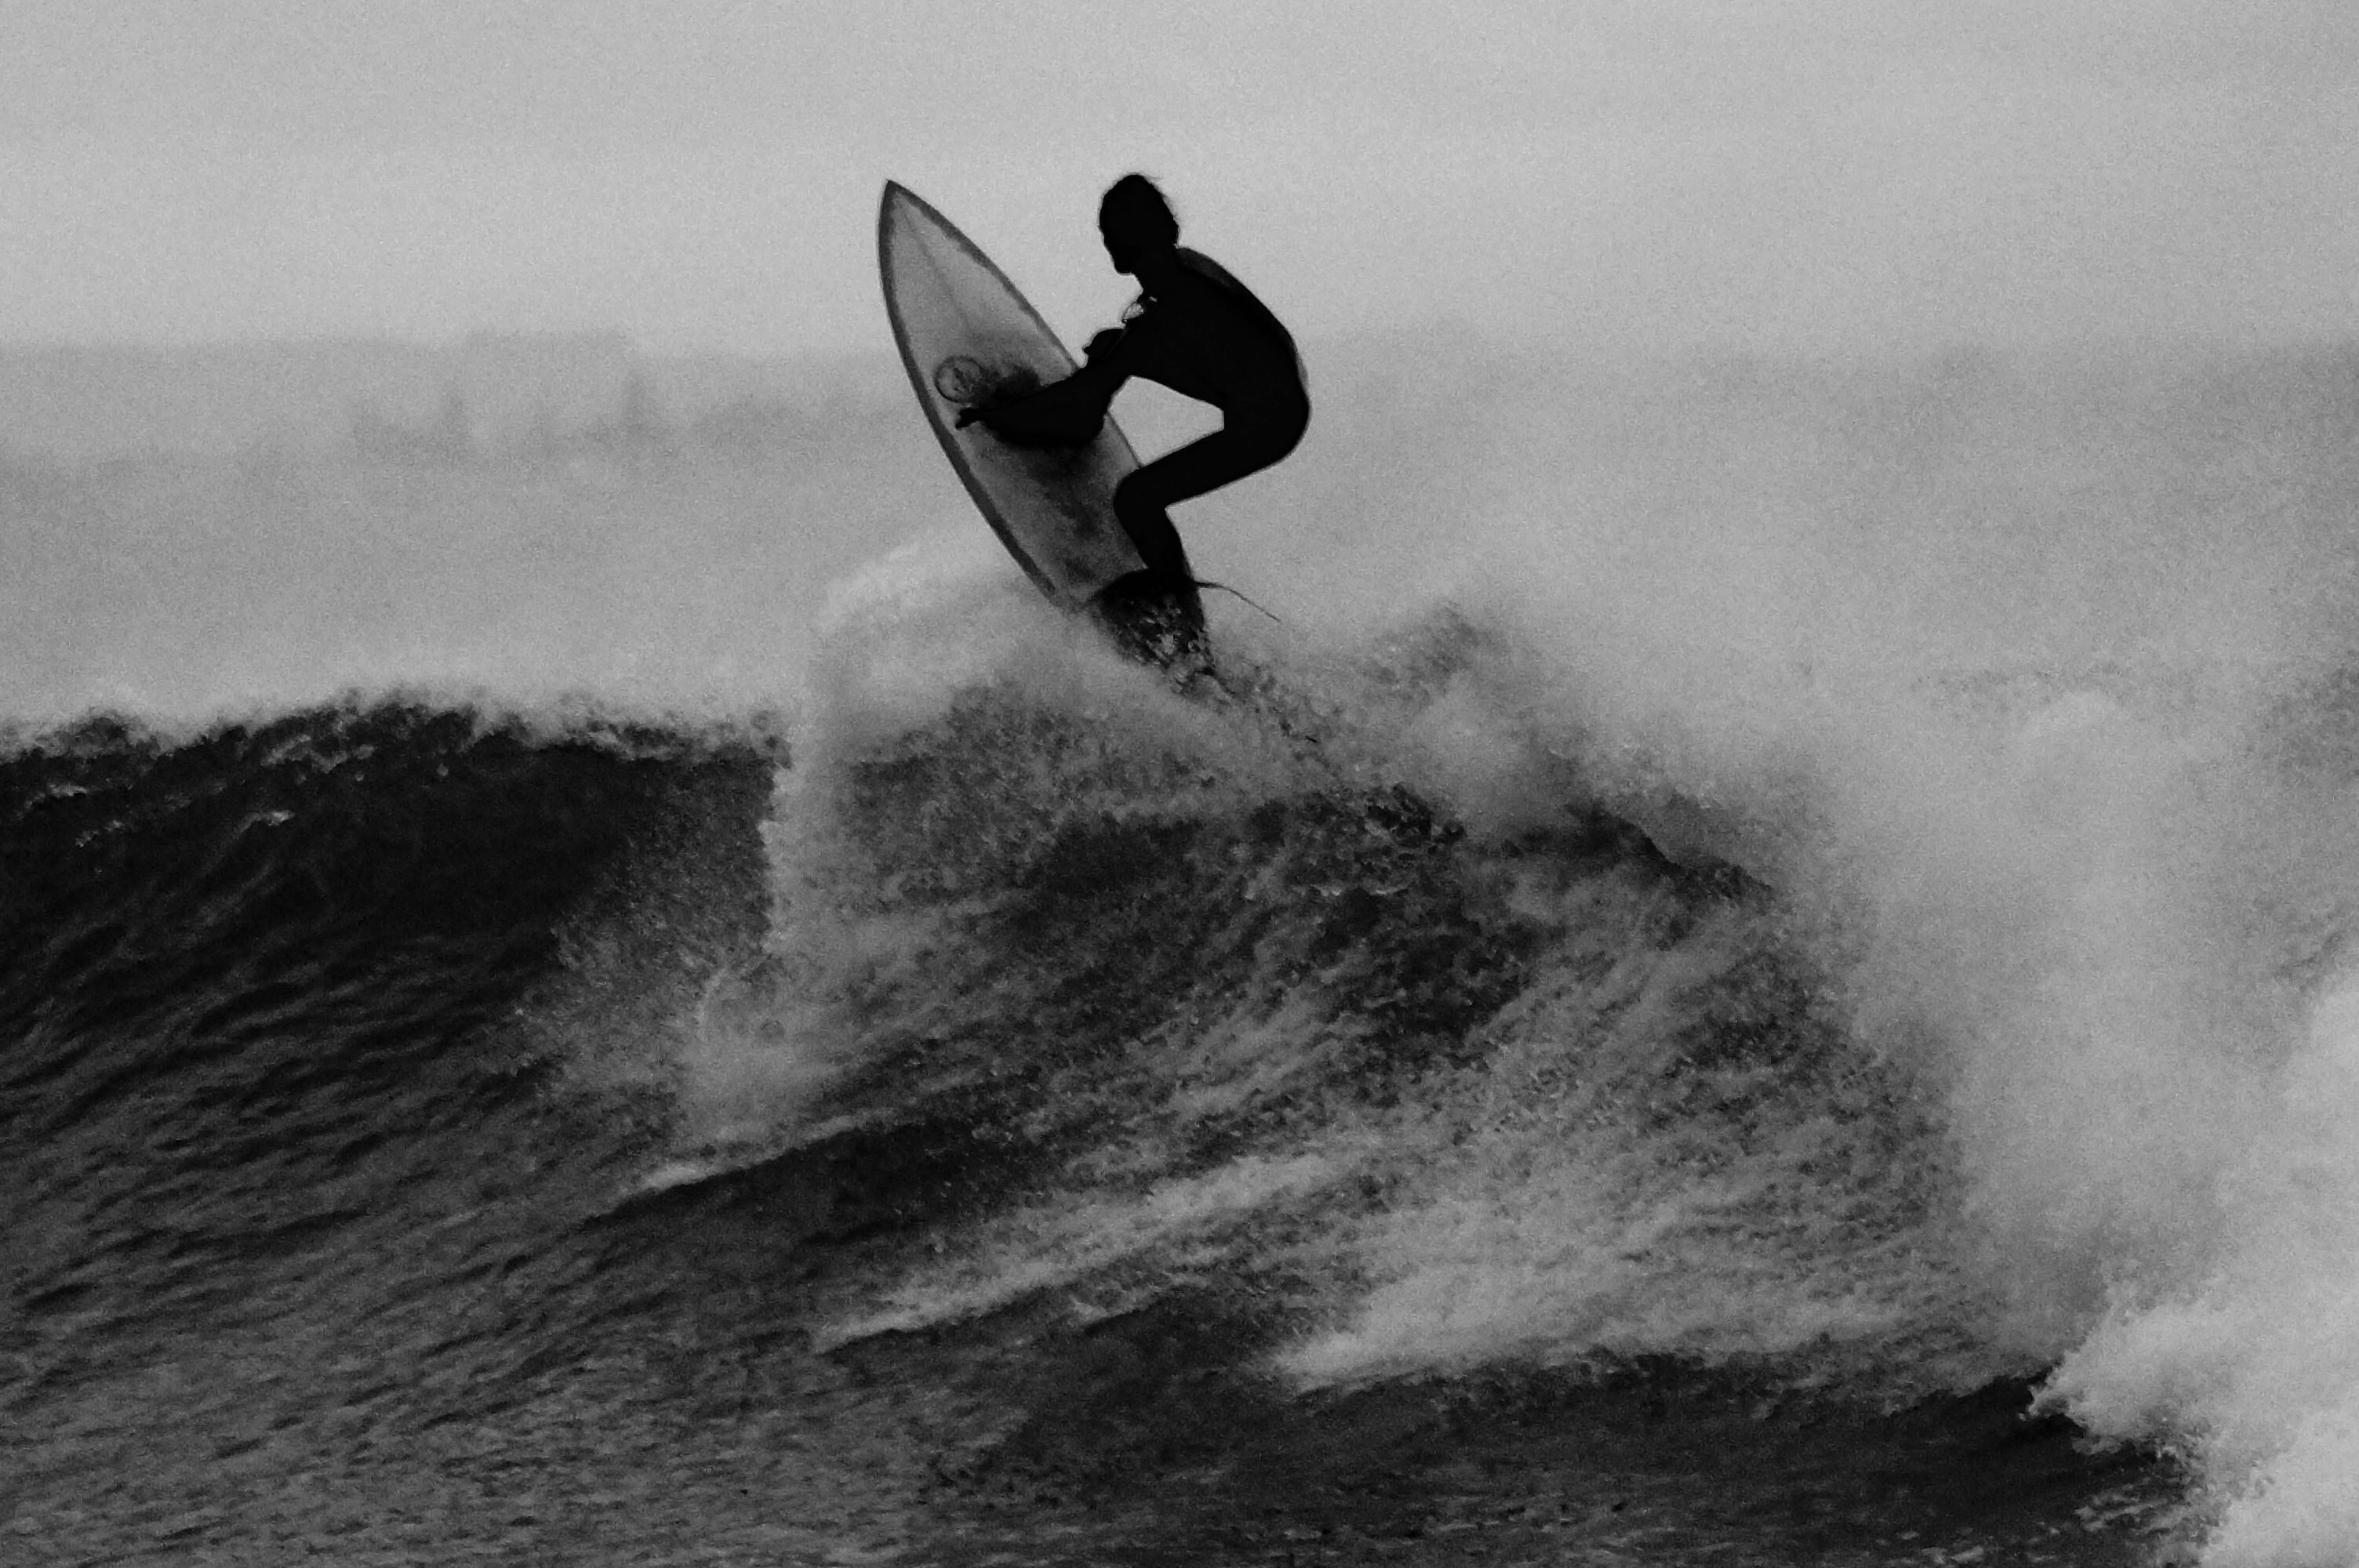 Picallscom  Surfer black and white by Unsplash